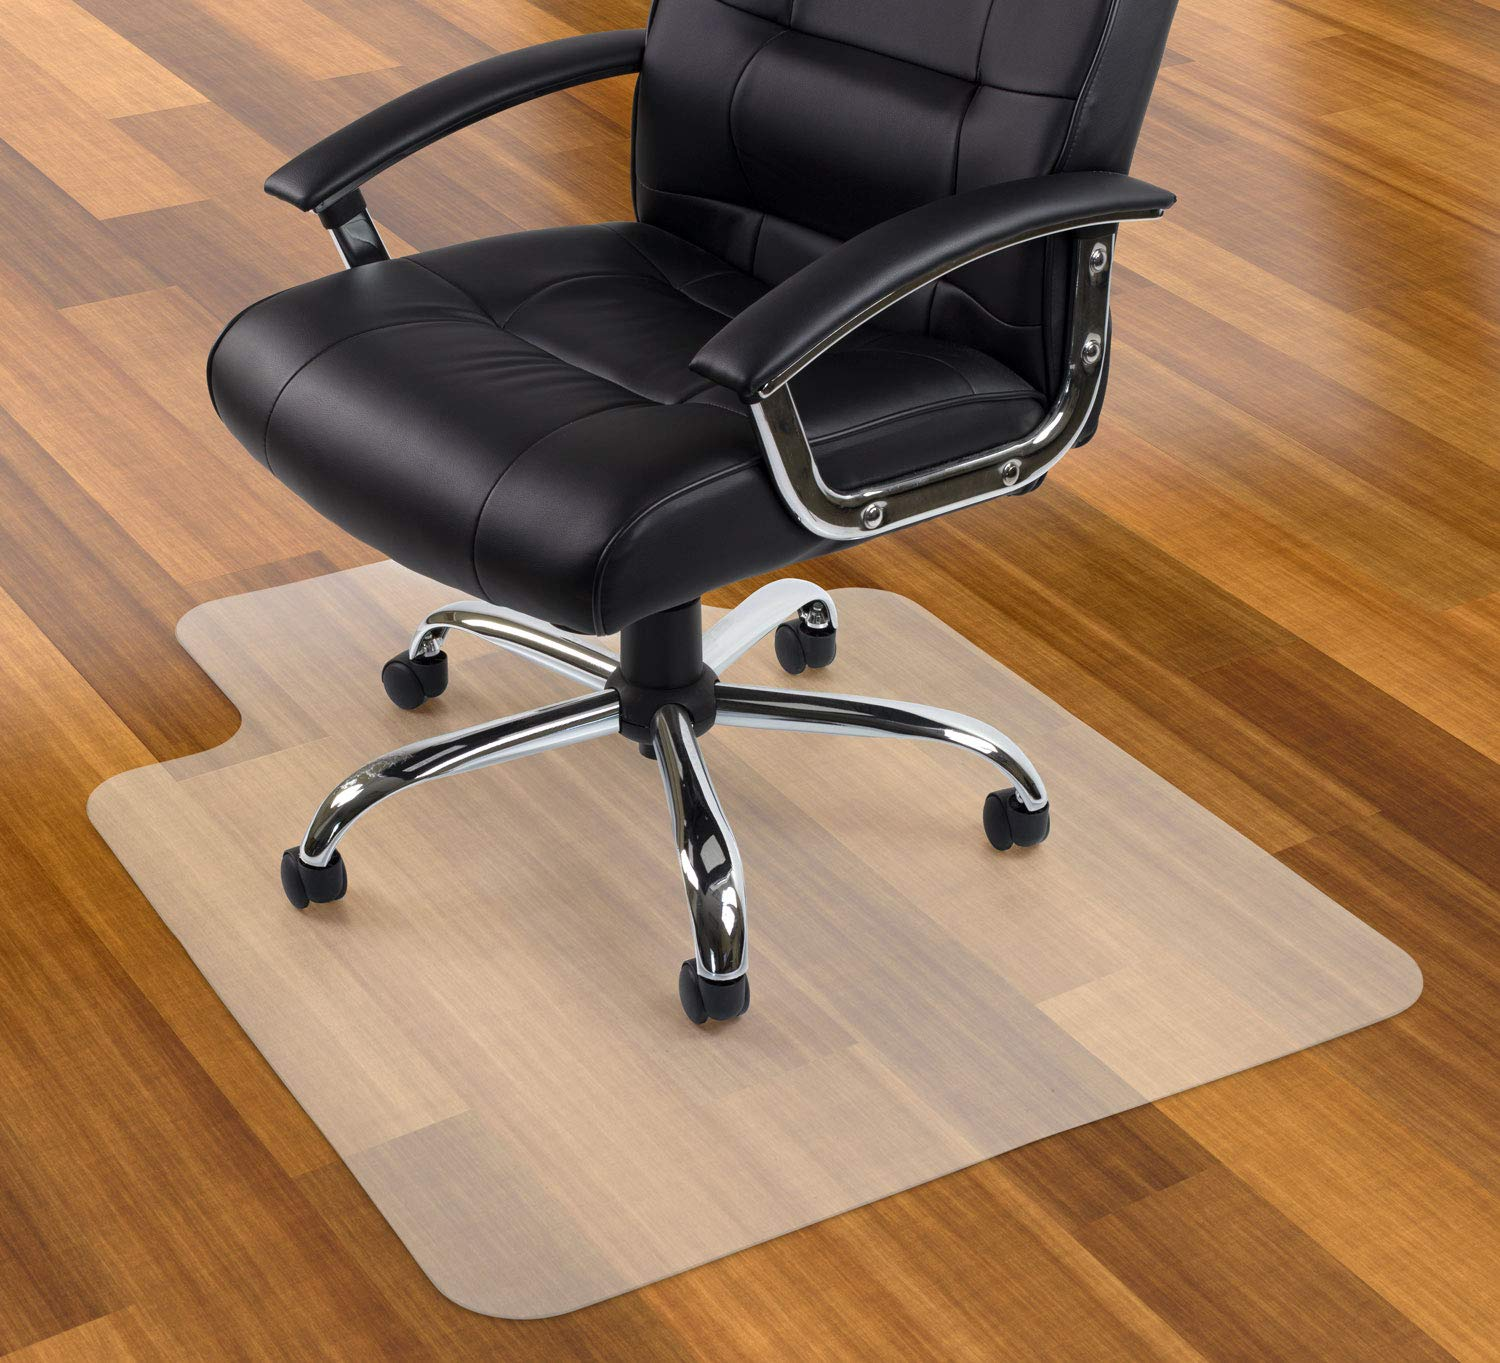 Mount-It! Office Chair Mat for Hardwood Floor, Clear Computer Chair Floor Protector, Use in Home or Office on Wood, Tile, Linoleum, Vinyl, or Carpet, 47'' x 35.5''